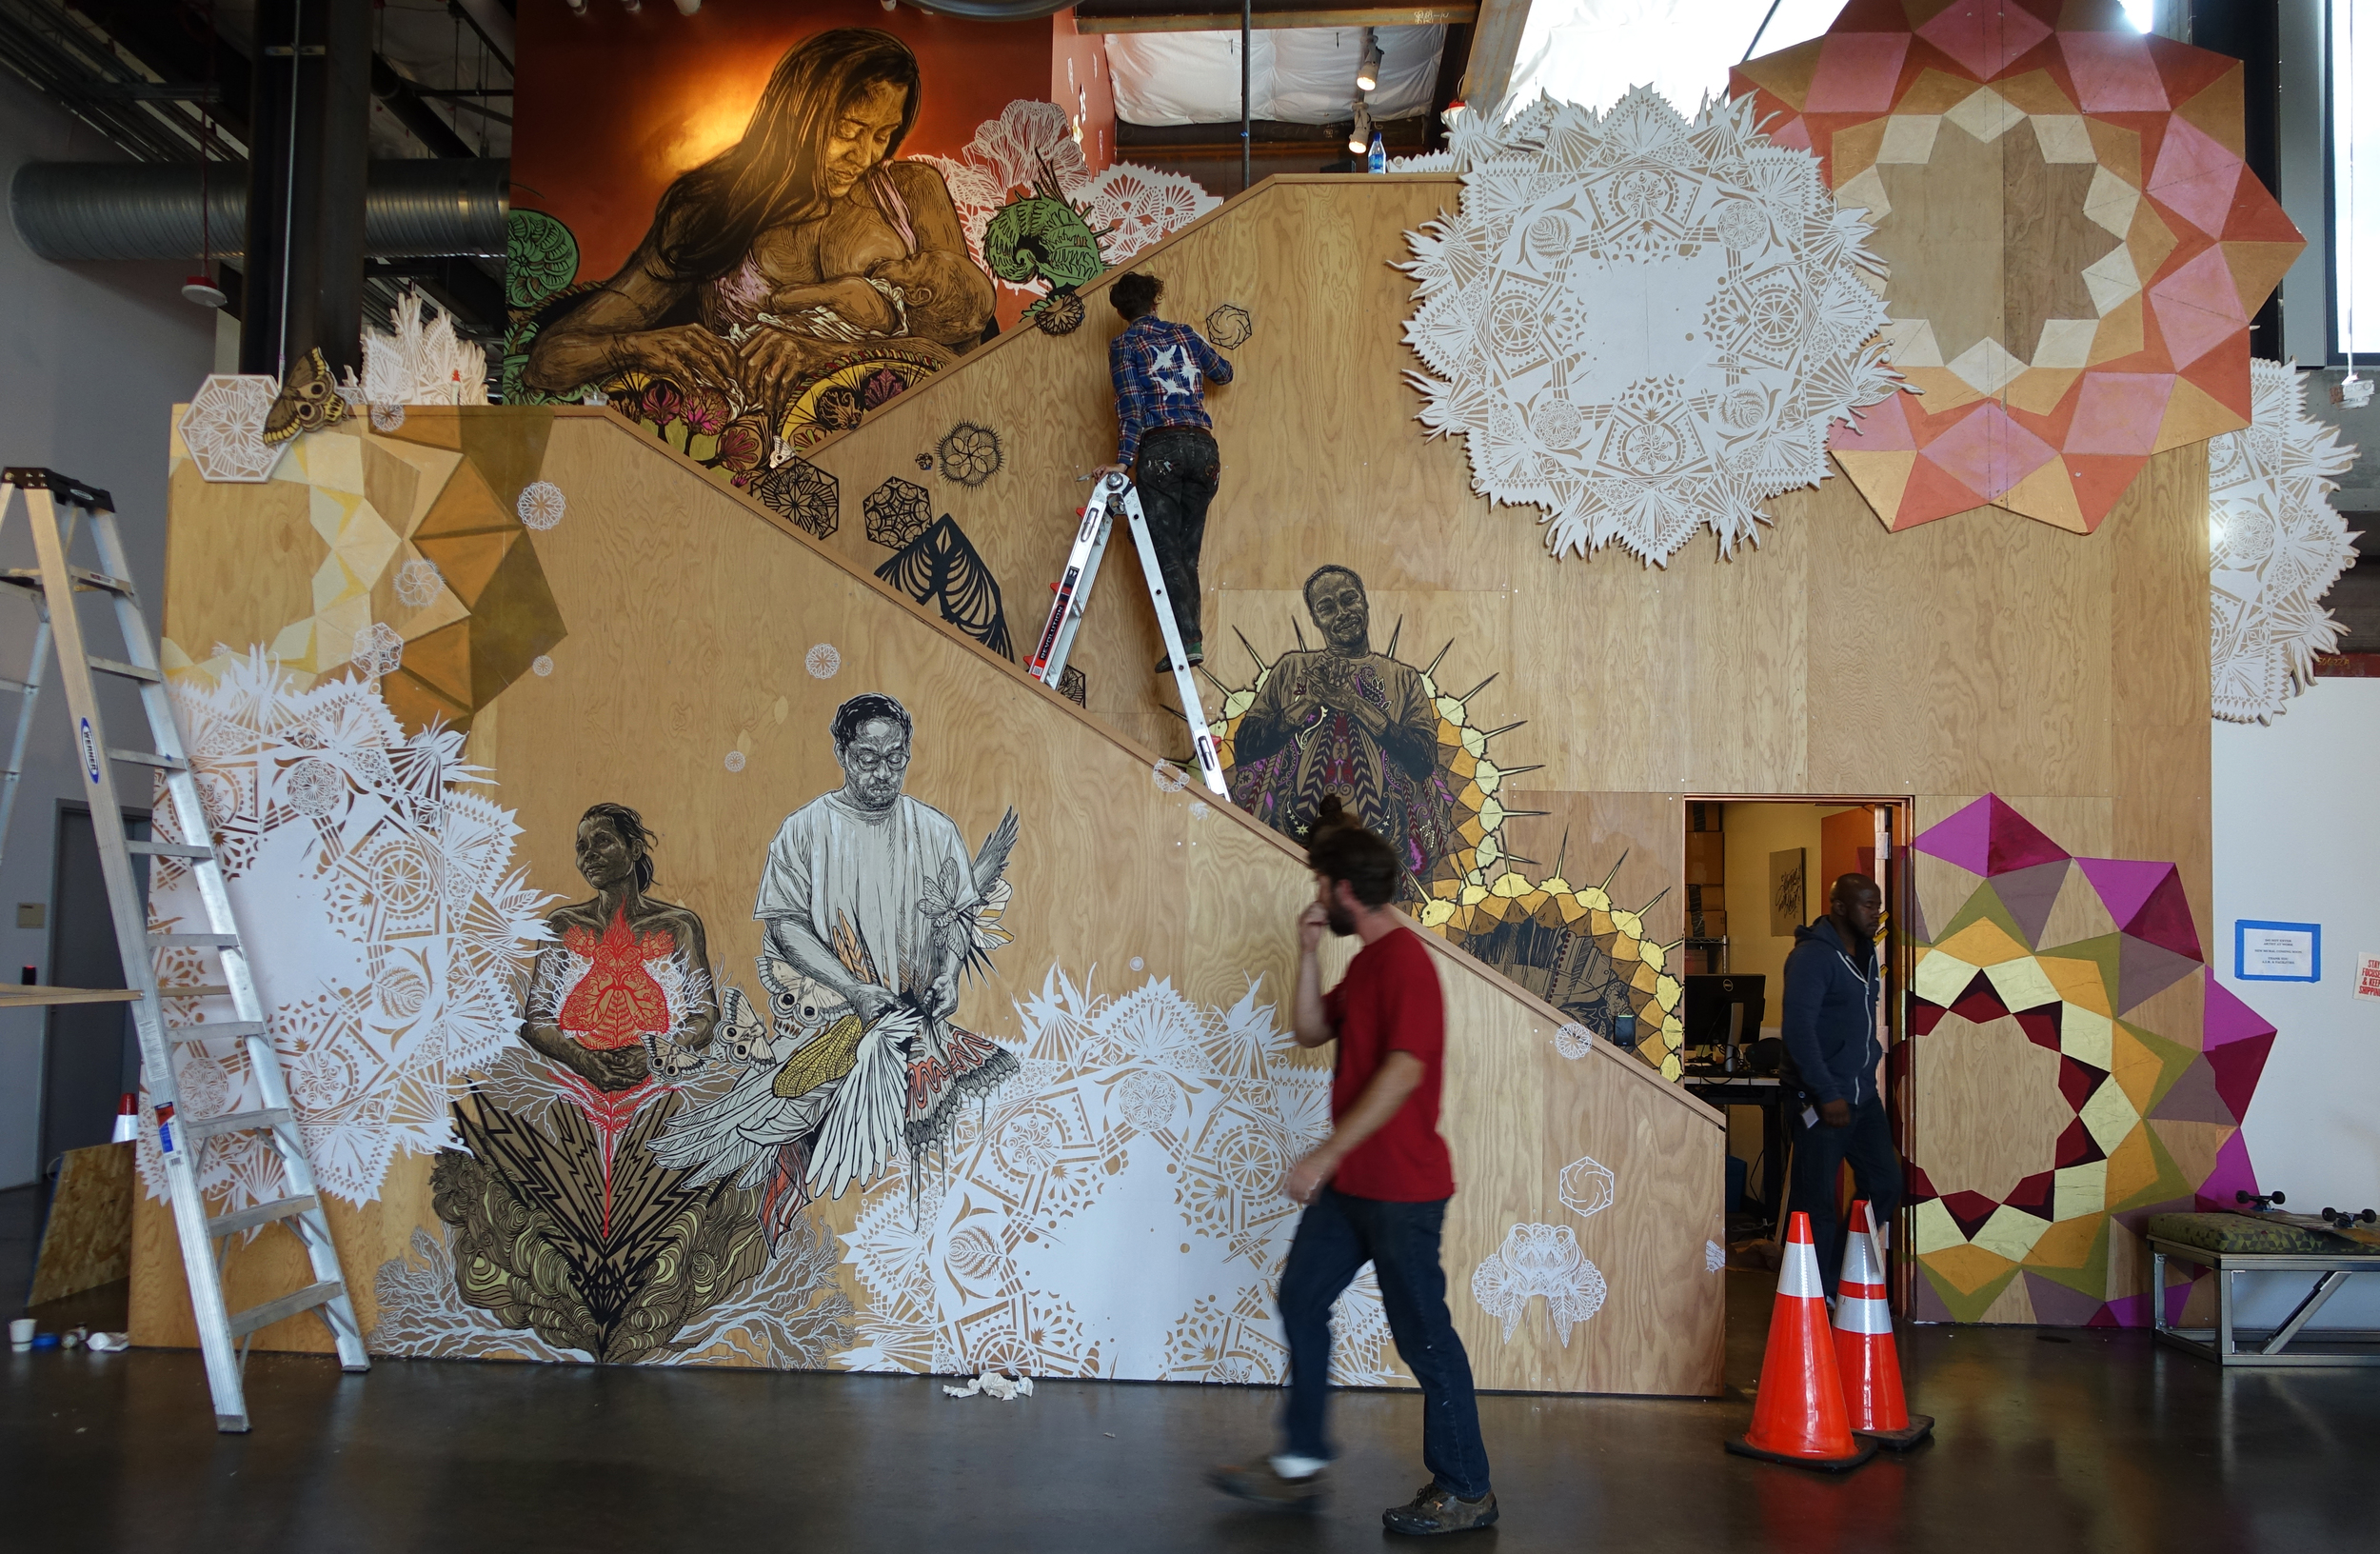 Swoon and her team install a site-specific work at Facebook Headquarters in Palo Alto, California. ( Photo : Swoon Studio)